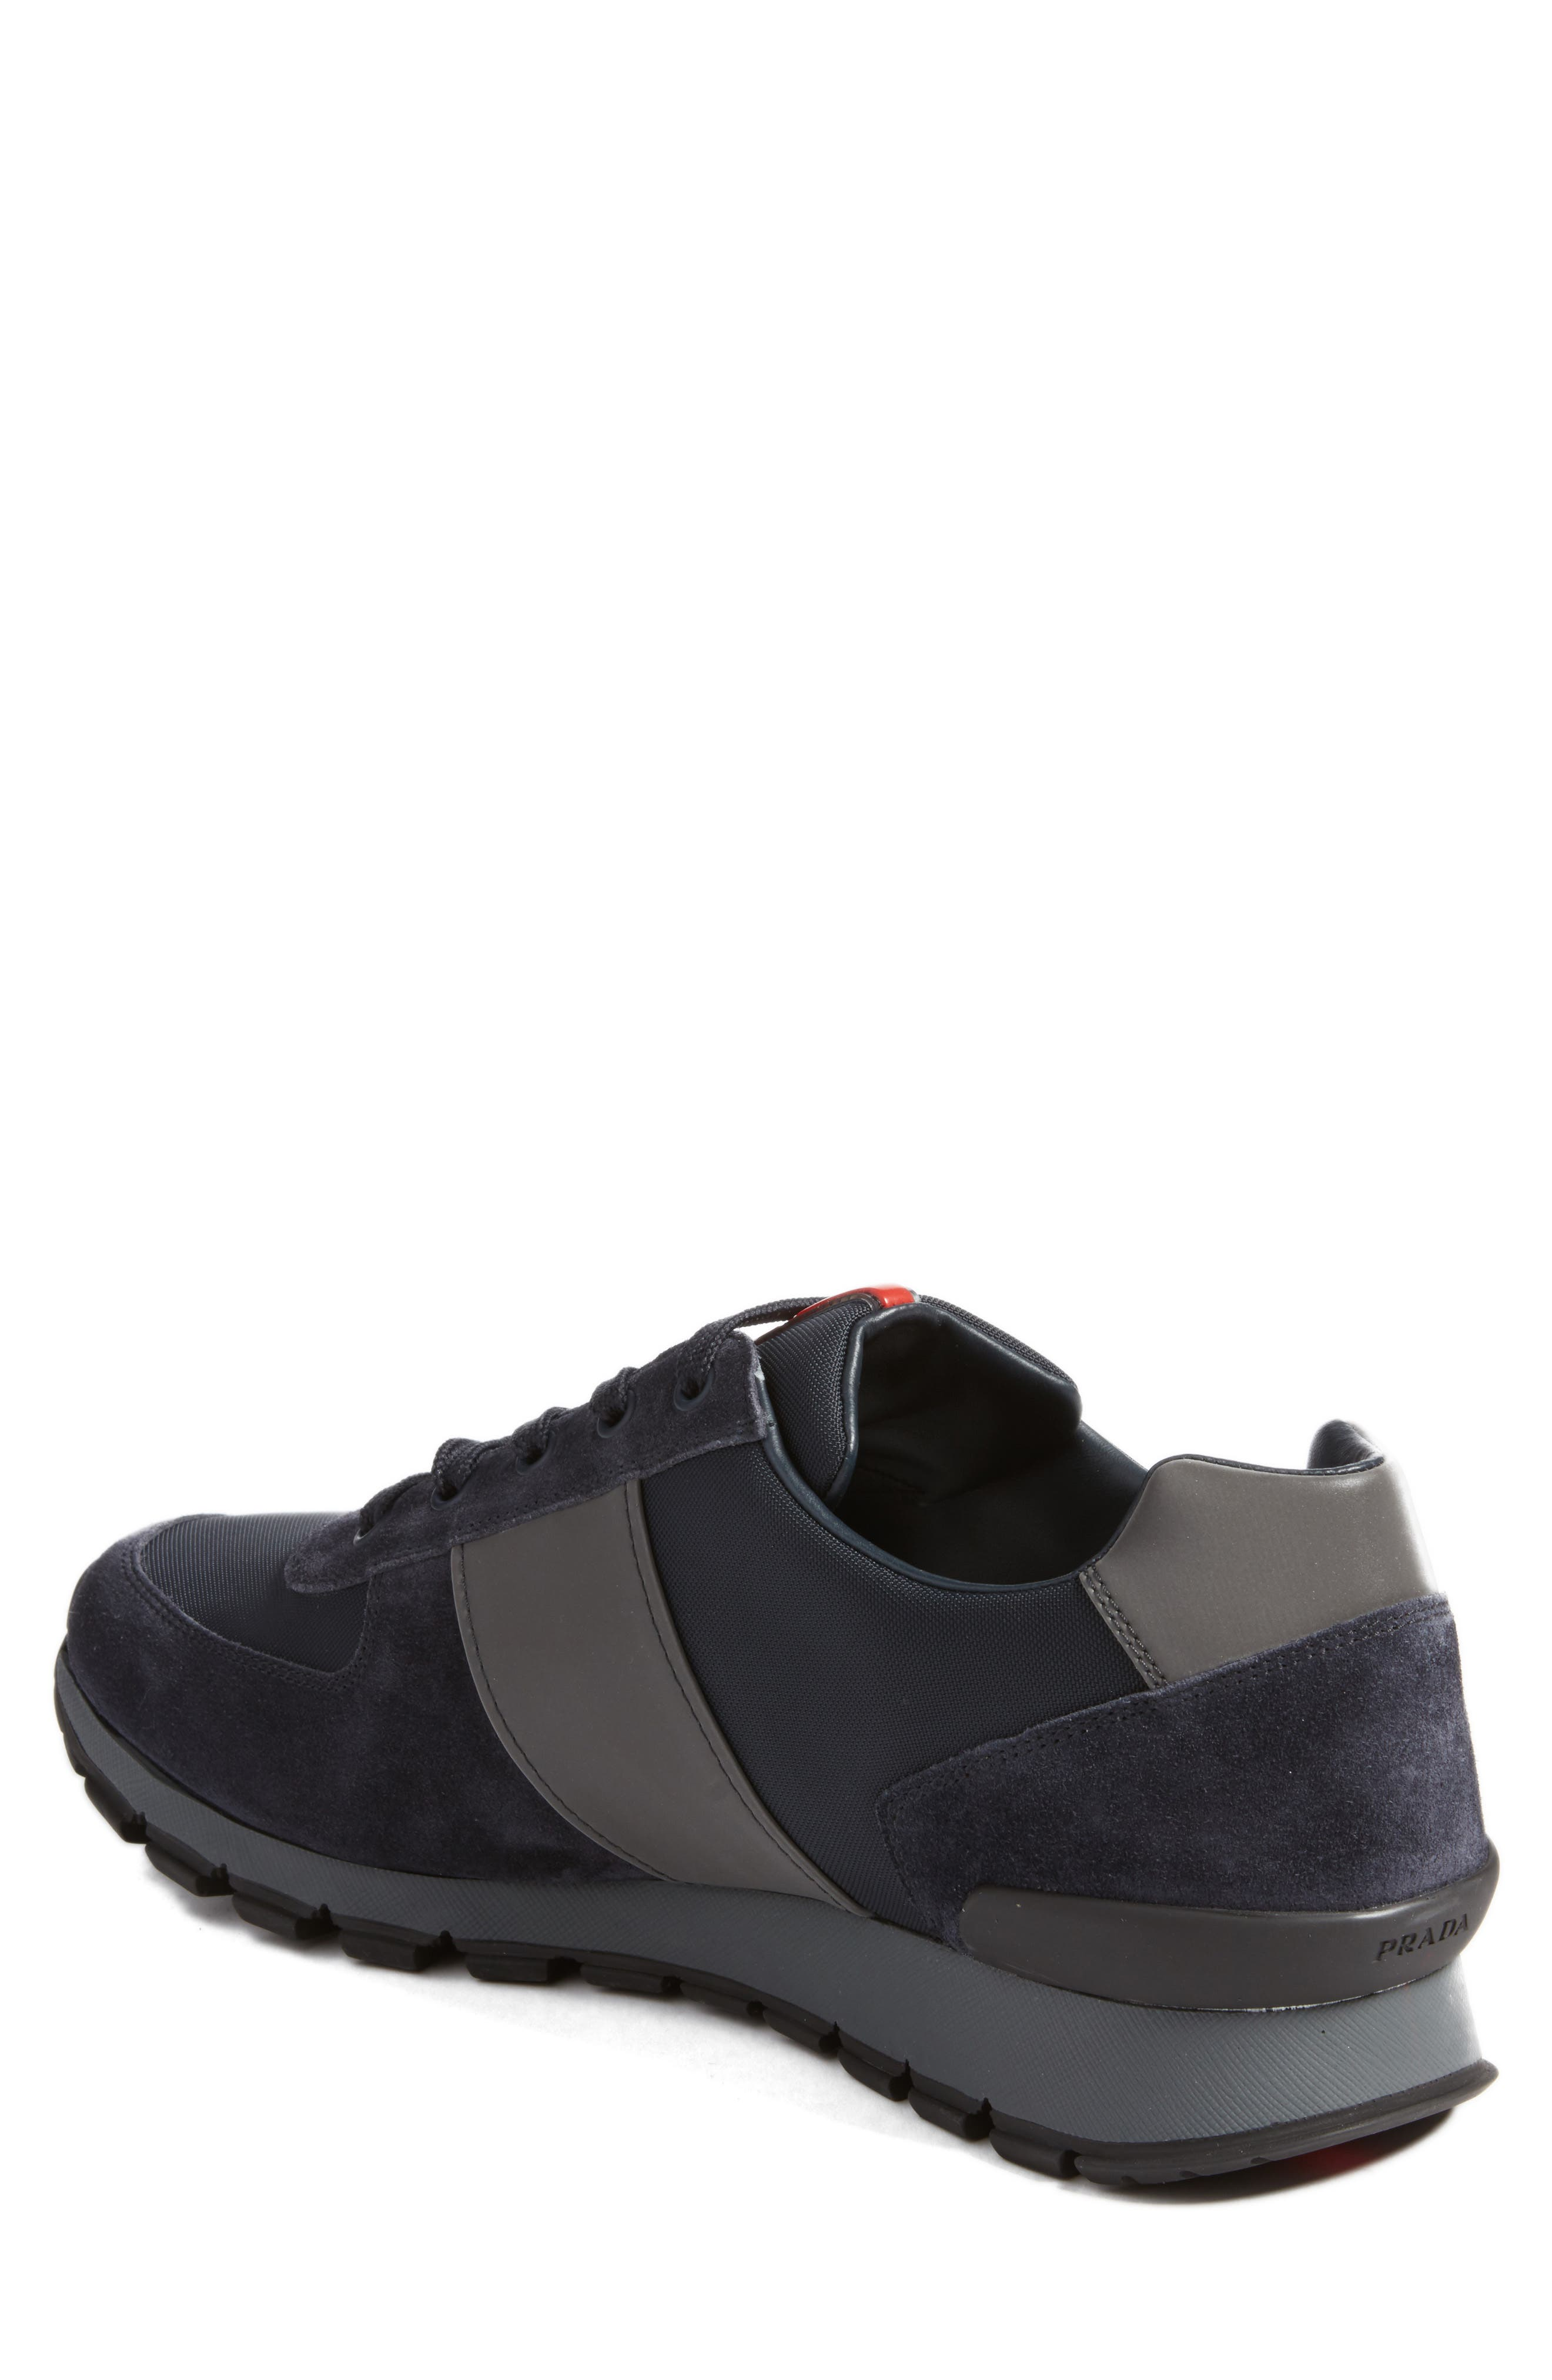 Prada Sneaker,                             Alternate thumbnail 2, color,                             Bleu Suede